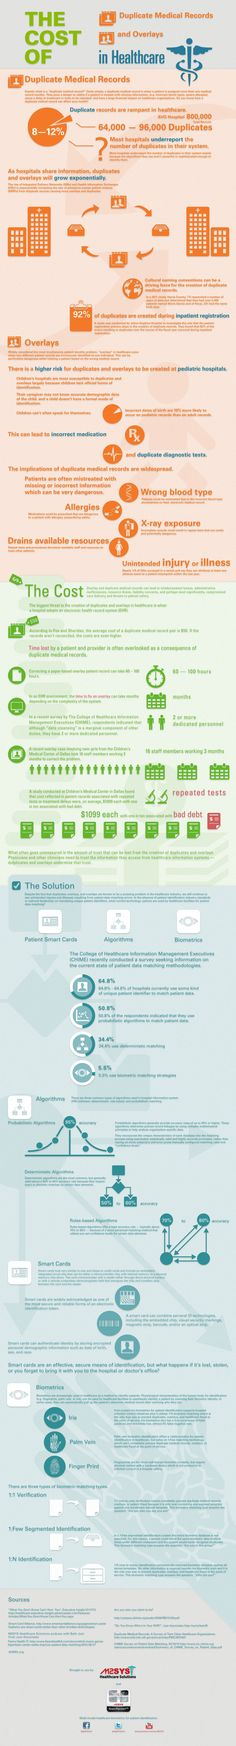 Infographic: The Cost of Healthcare #infographic #healthcare